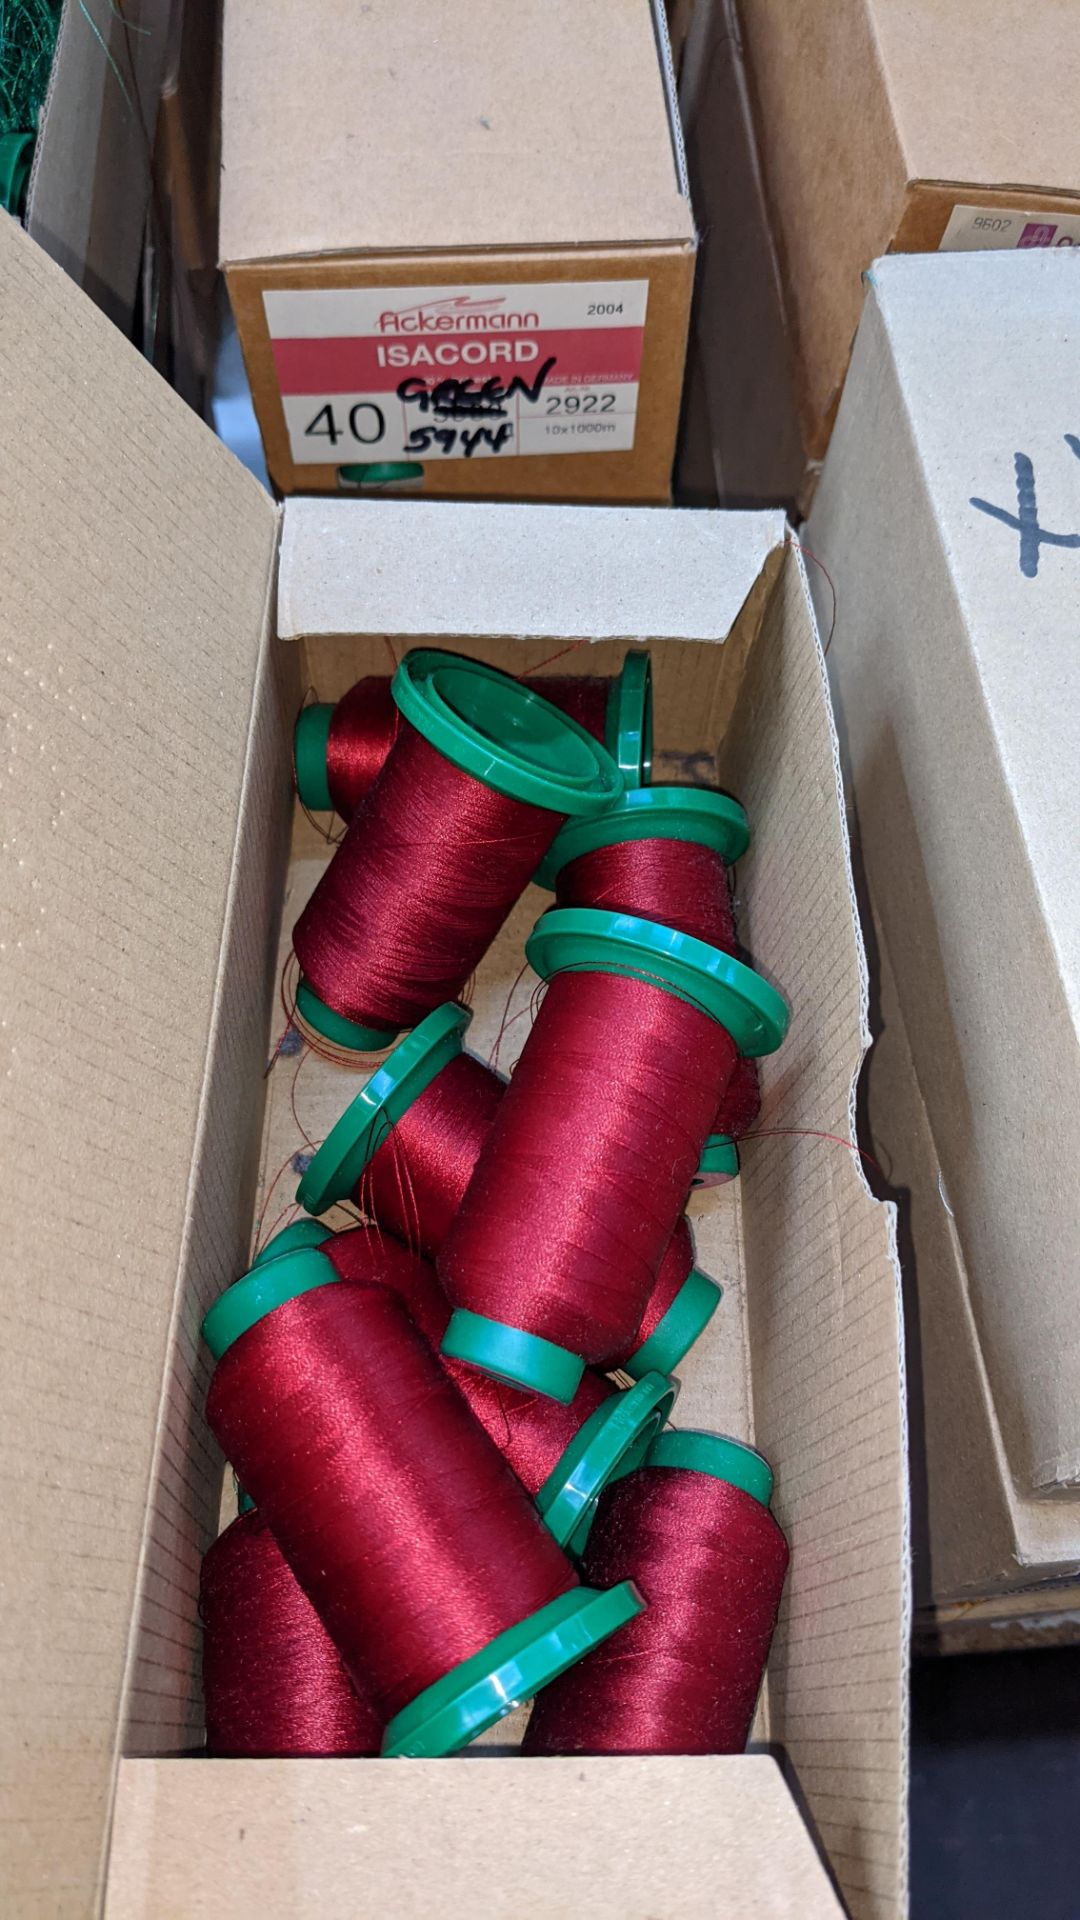 16 boxes of Ackermann Isacord (40) polyester thread - Image 7 of 9